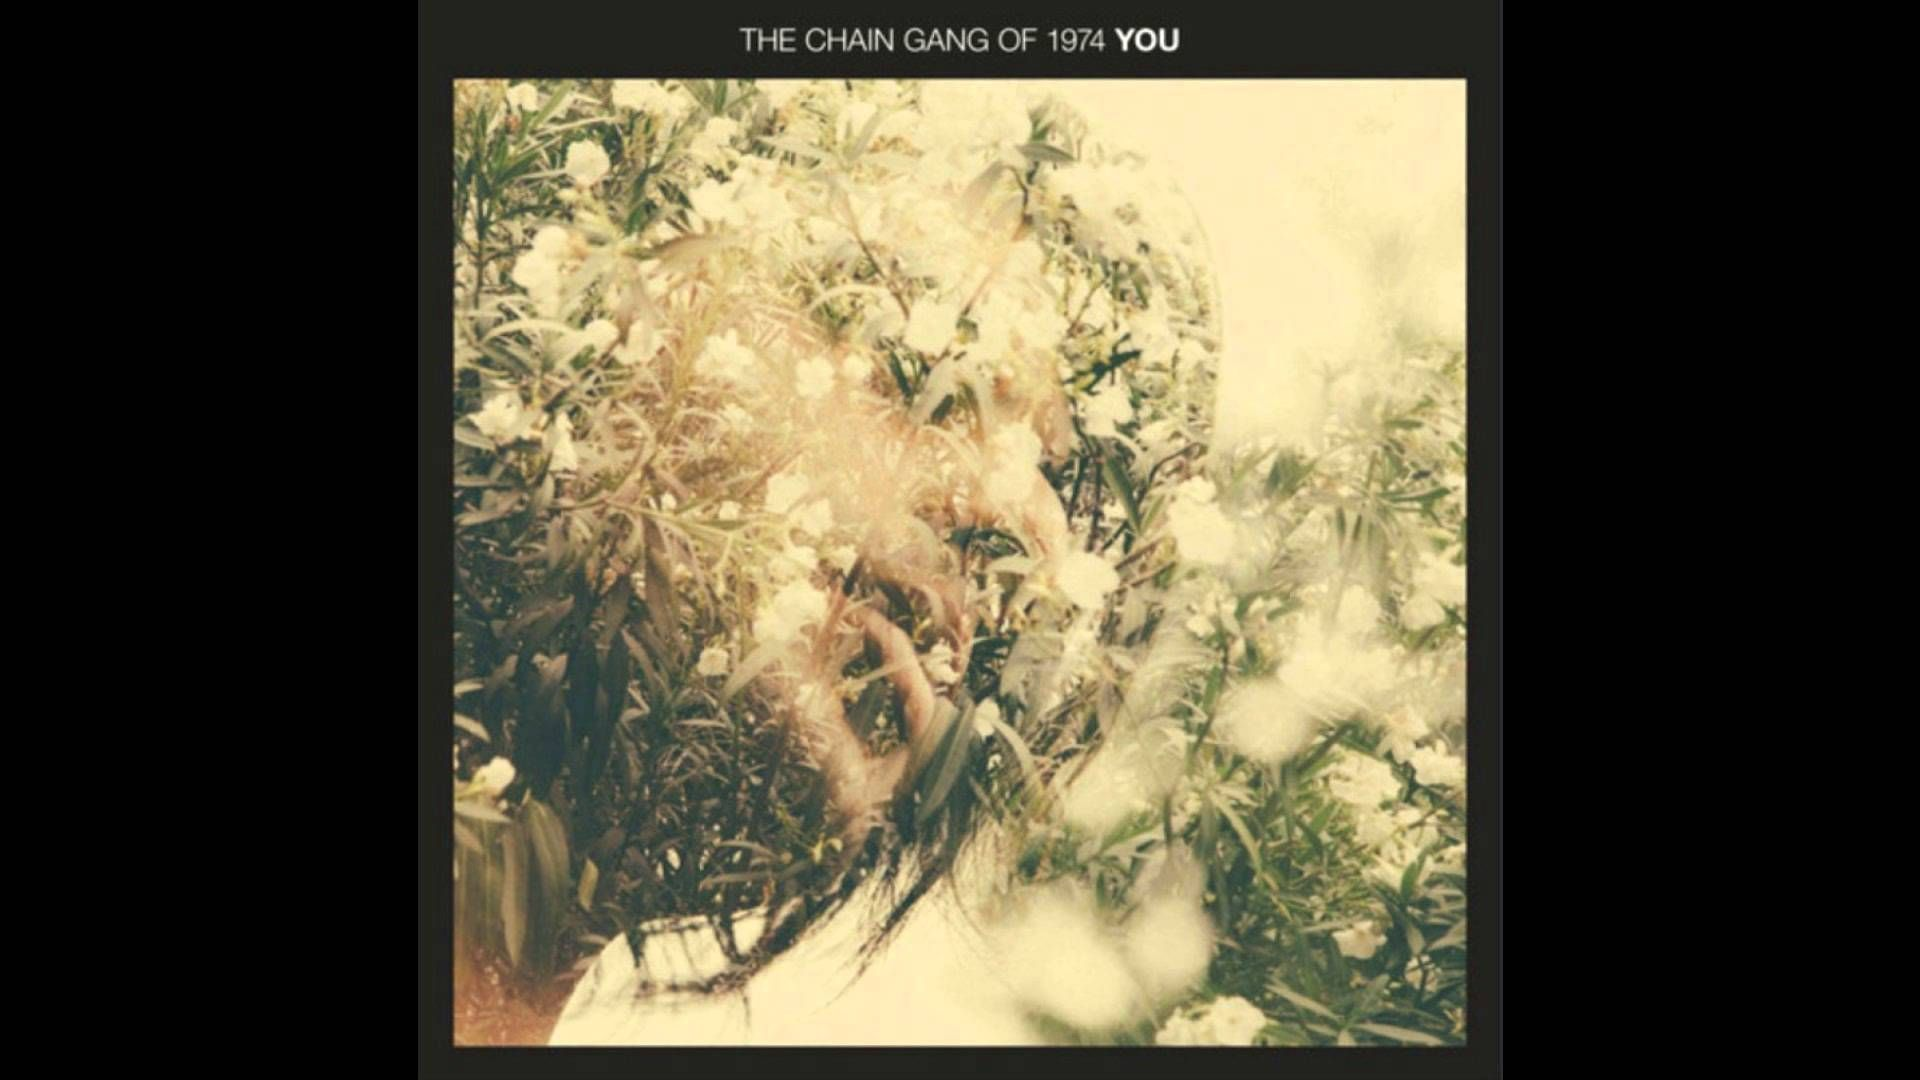 You by The Chain Gang of 1974